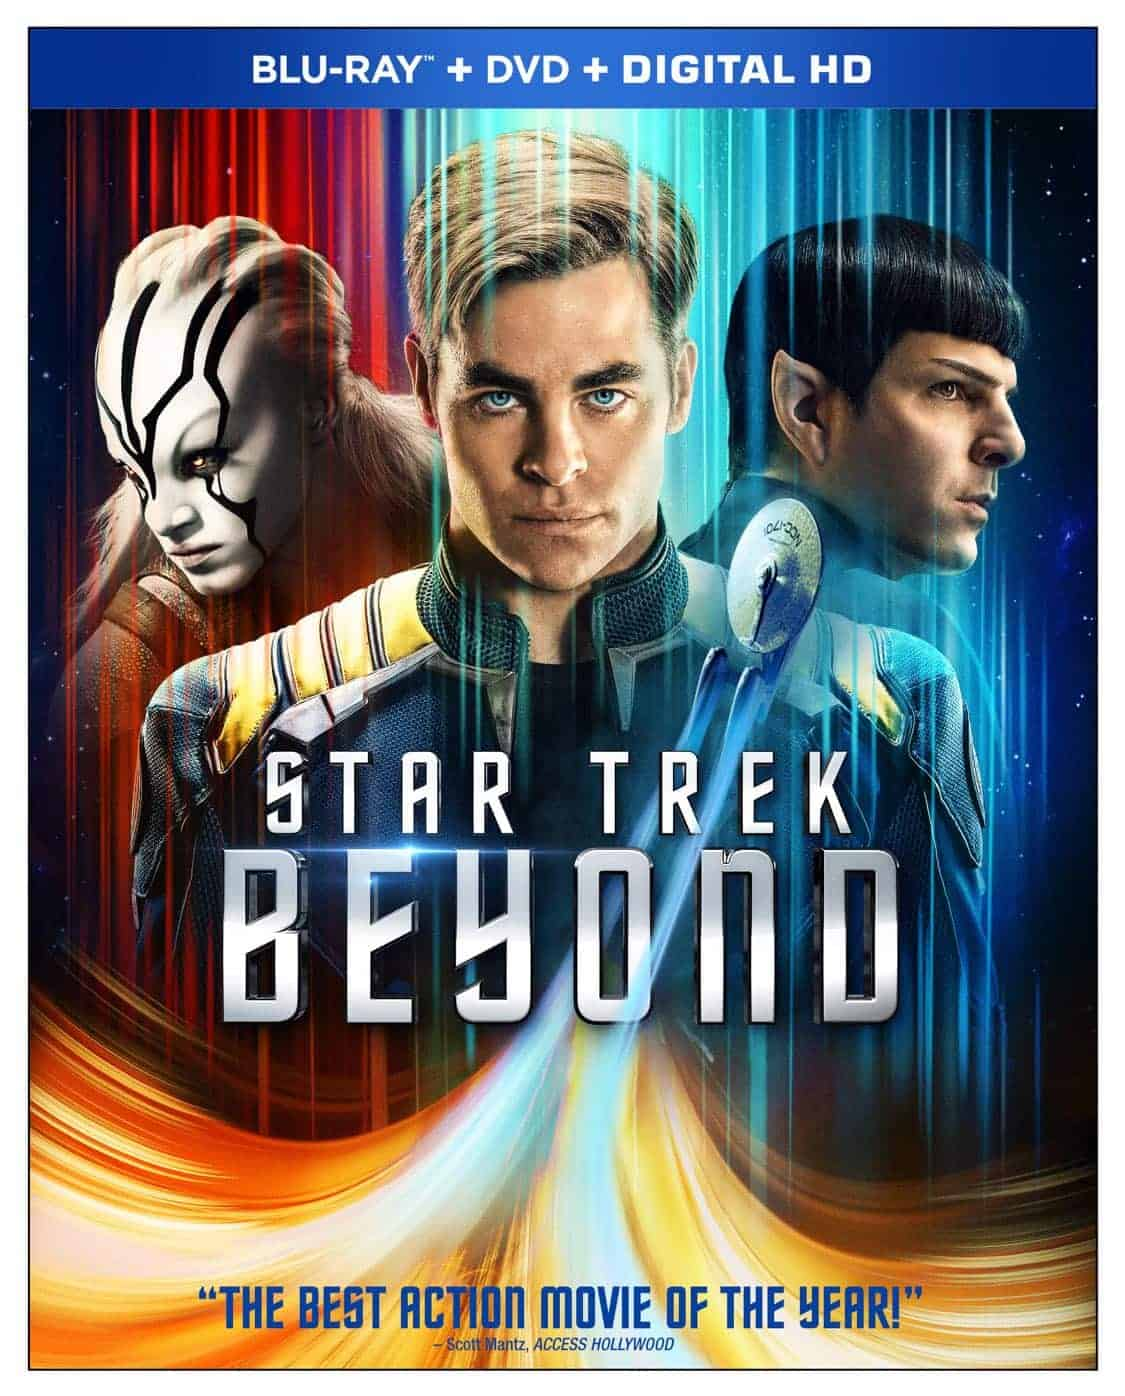 star-trek-beyond-blu-ray-and-dvd-release-details